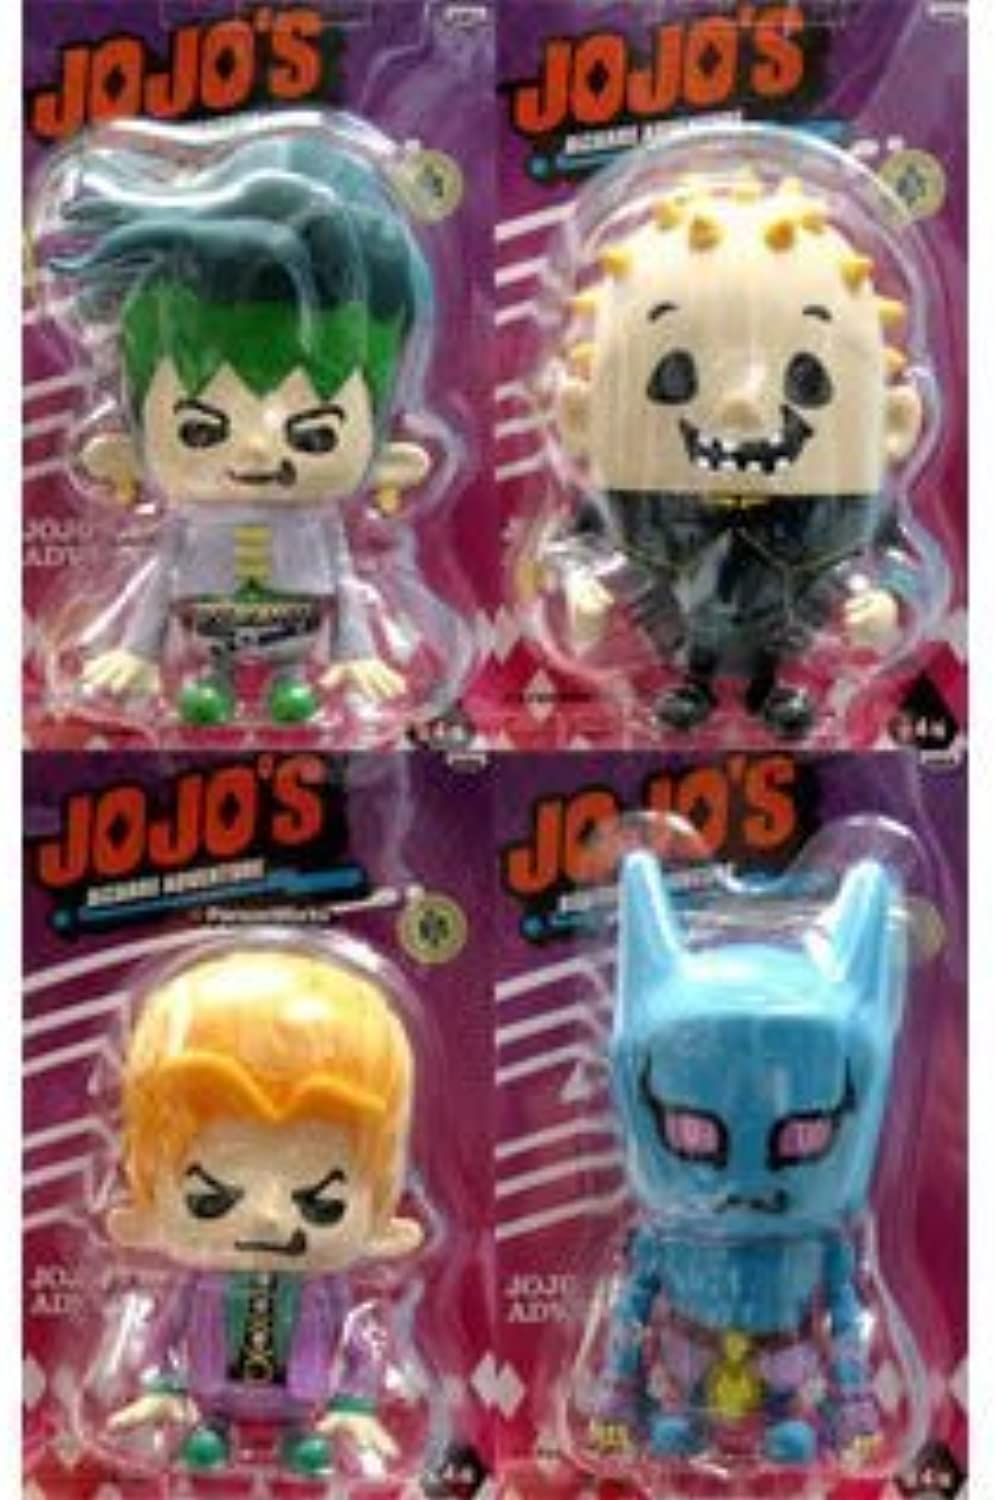 JoJo's Bizarre Adventure Soft Vinyl Figure 6 in blister all four set